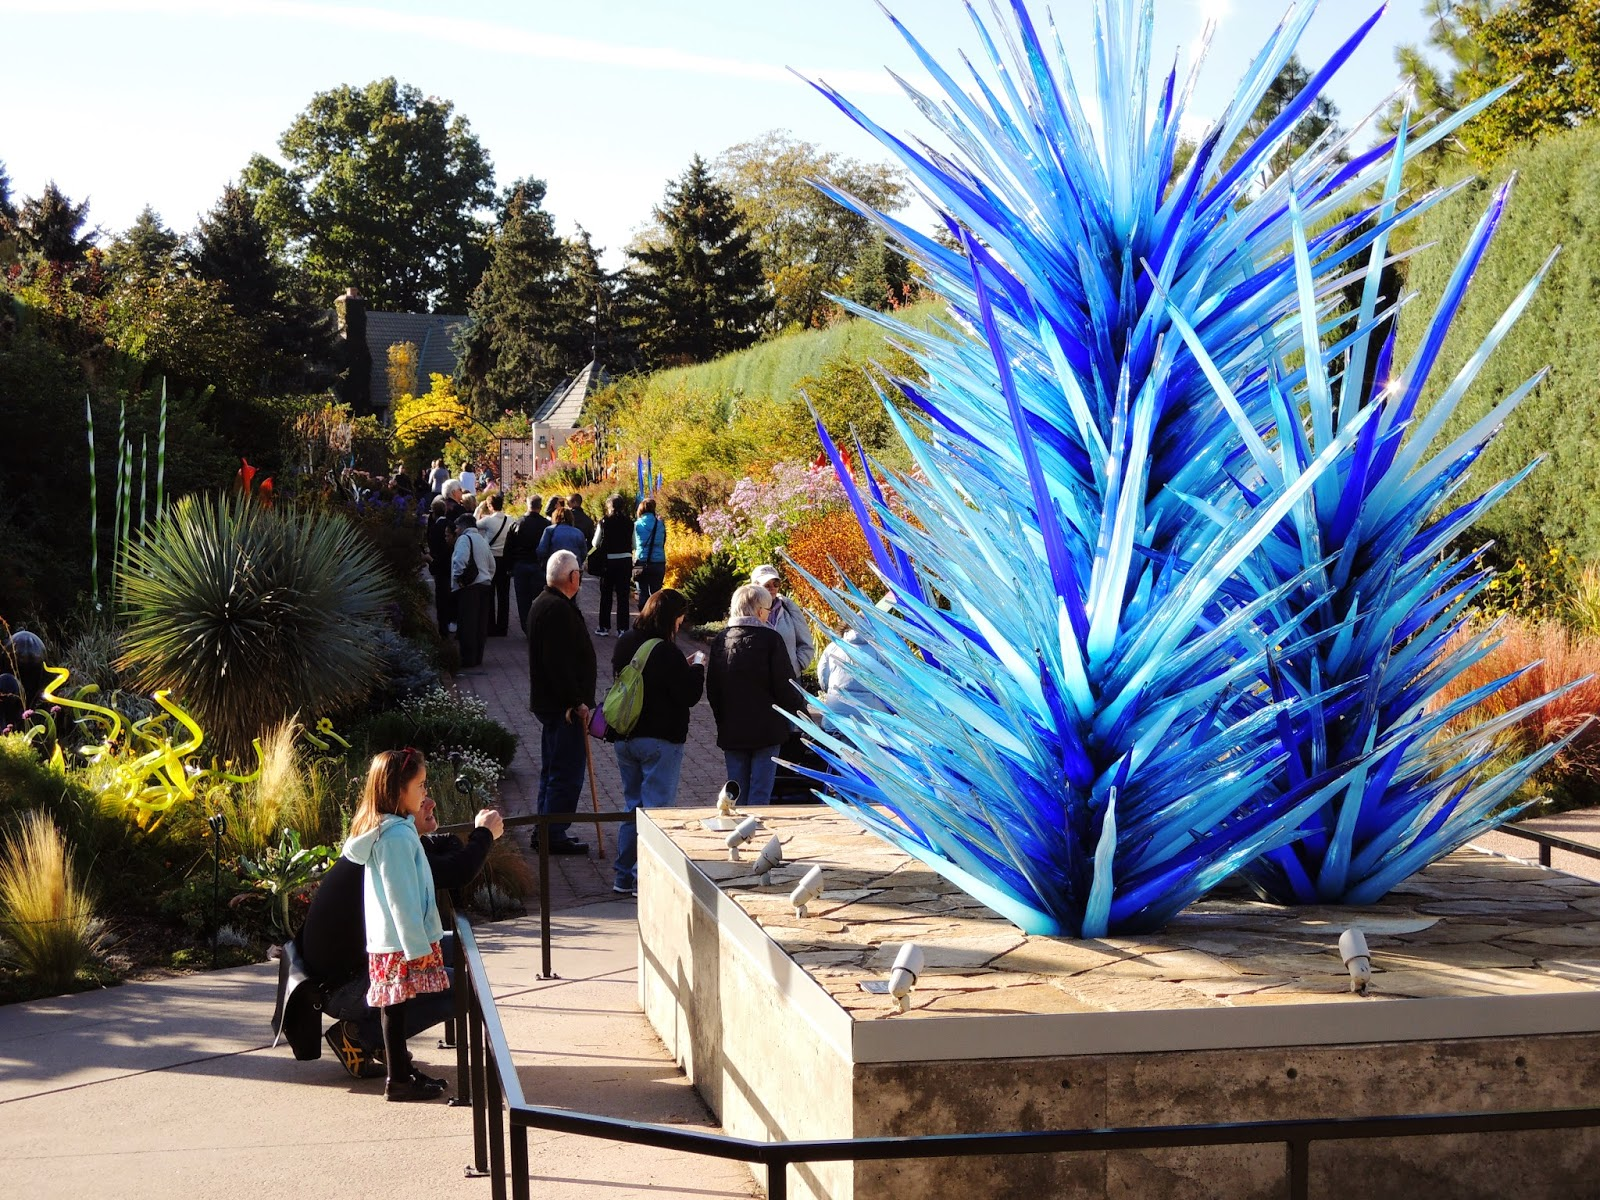 Dale Chihuly, Denver Botanic Garden, glass art